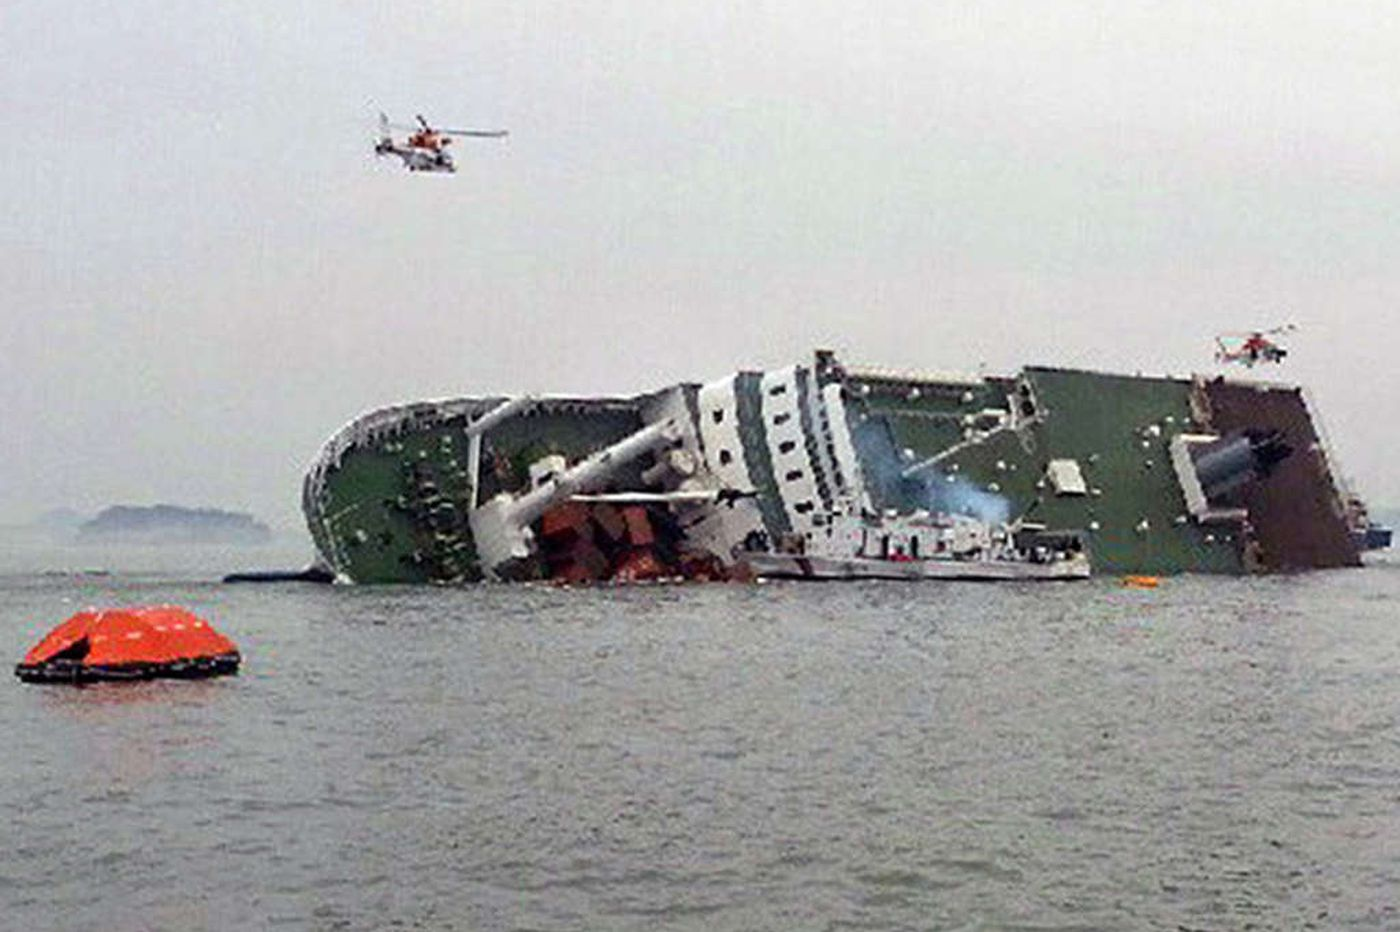 Rescue underway from S. Korean ferry